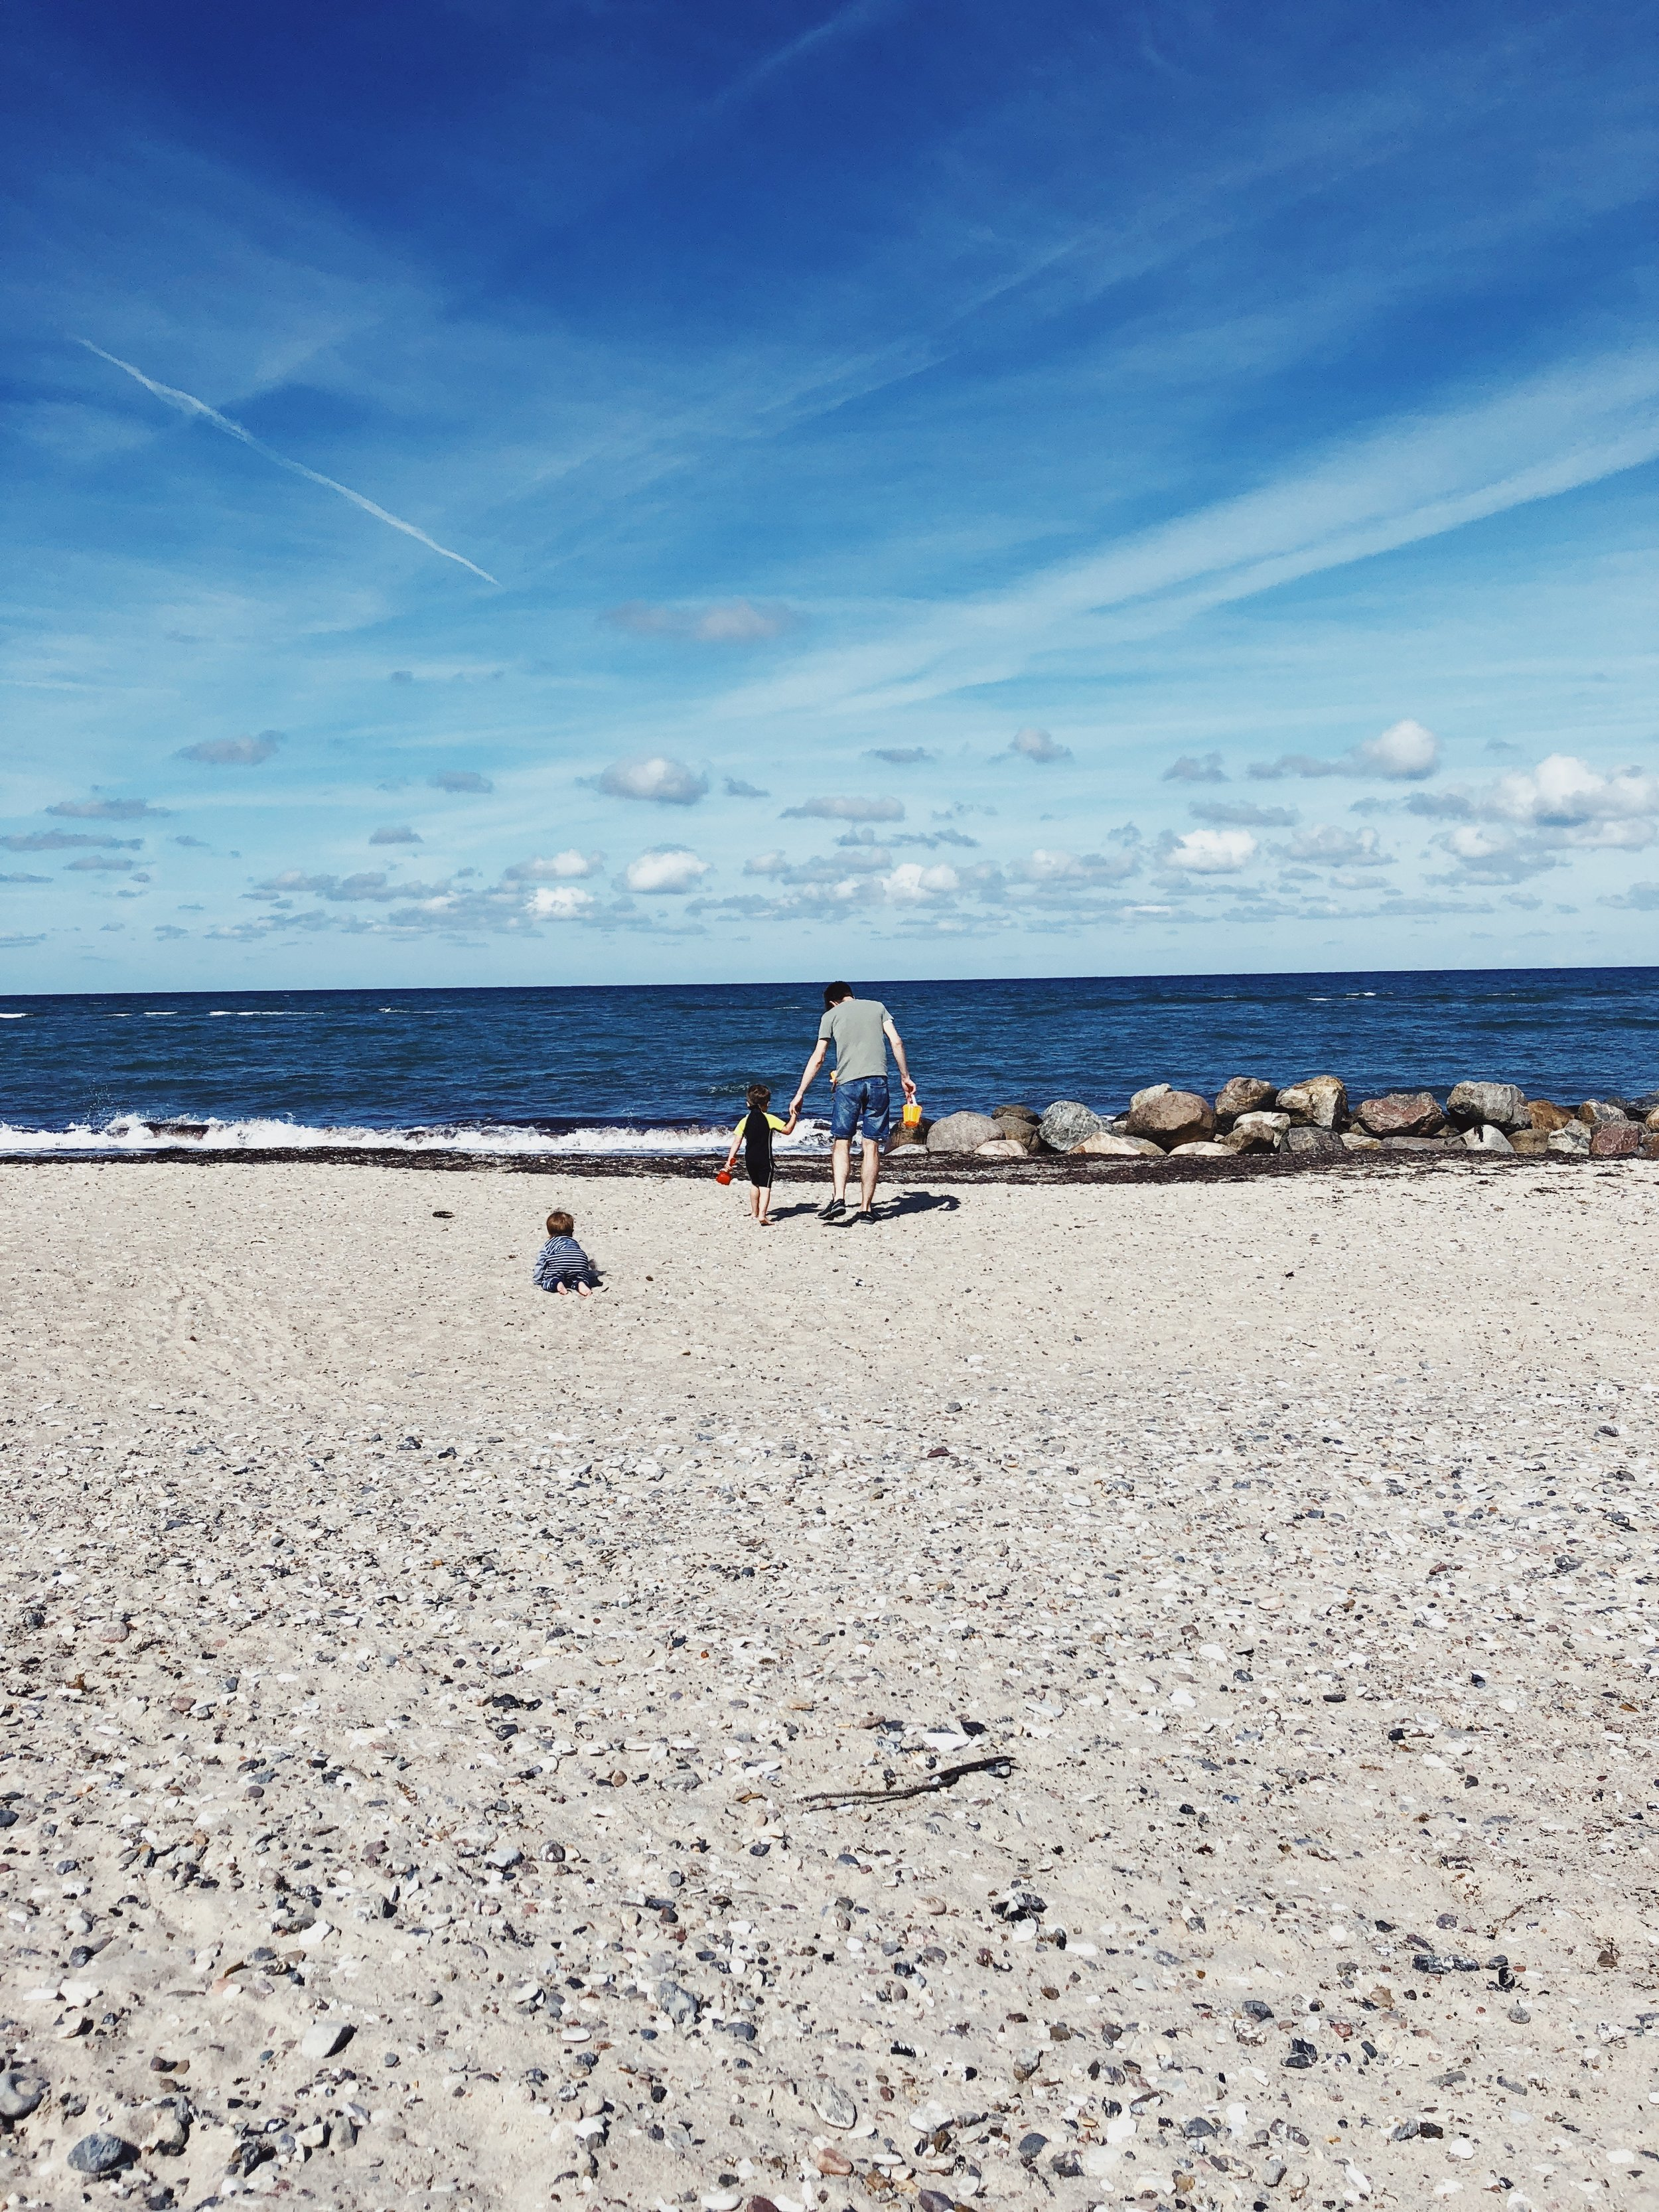 A family holiday in Denmark and staying in a summerhouse on the Danish coast with young children. More on my blog ourstorytime.co.uk